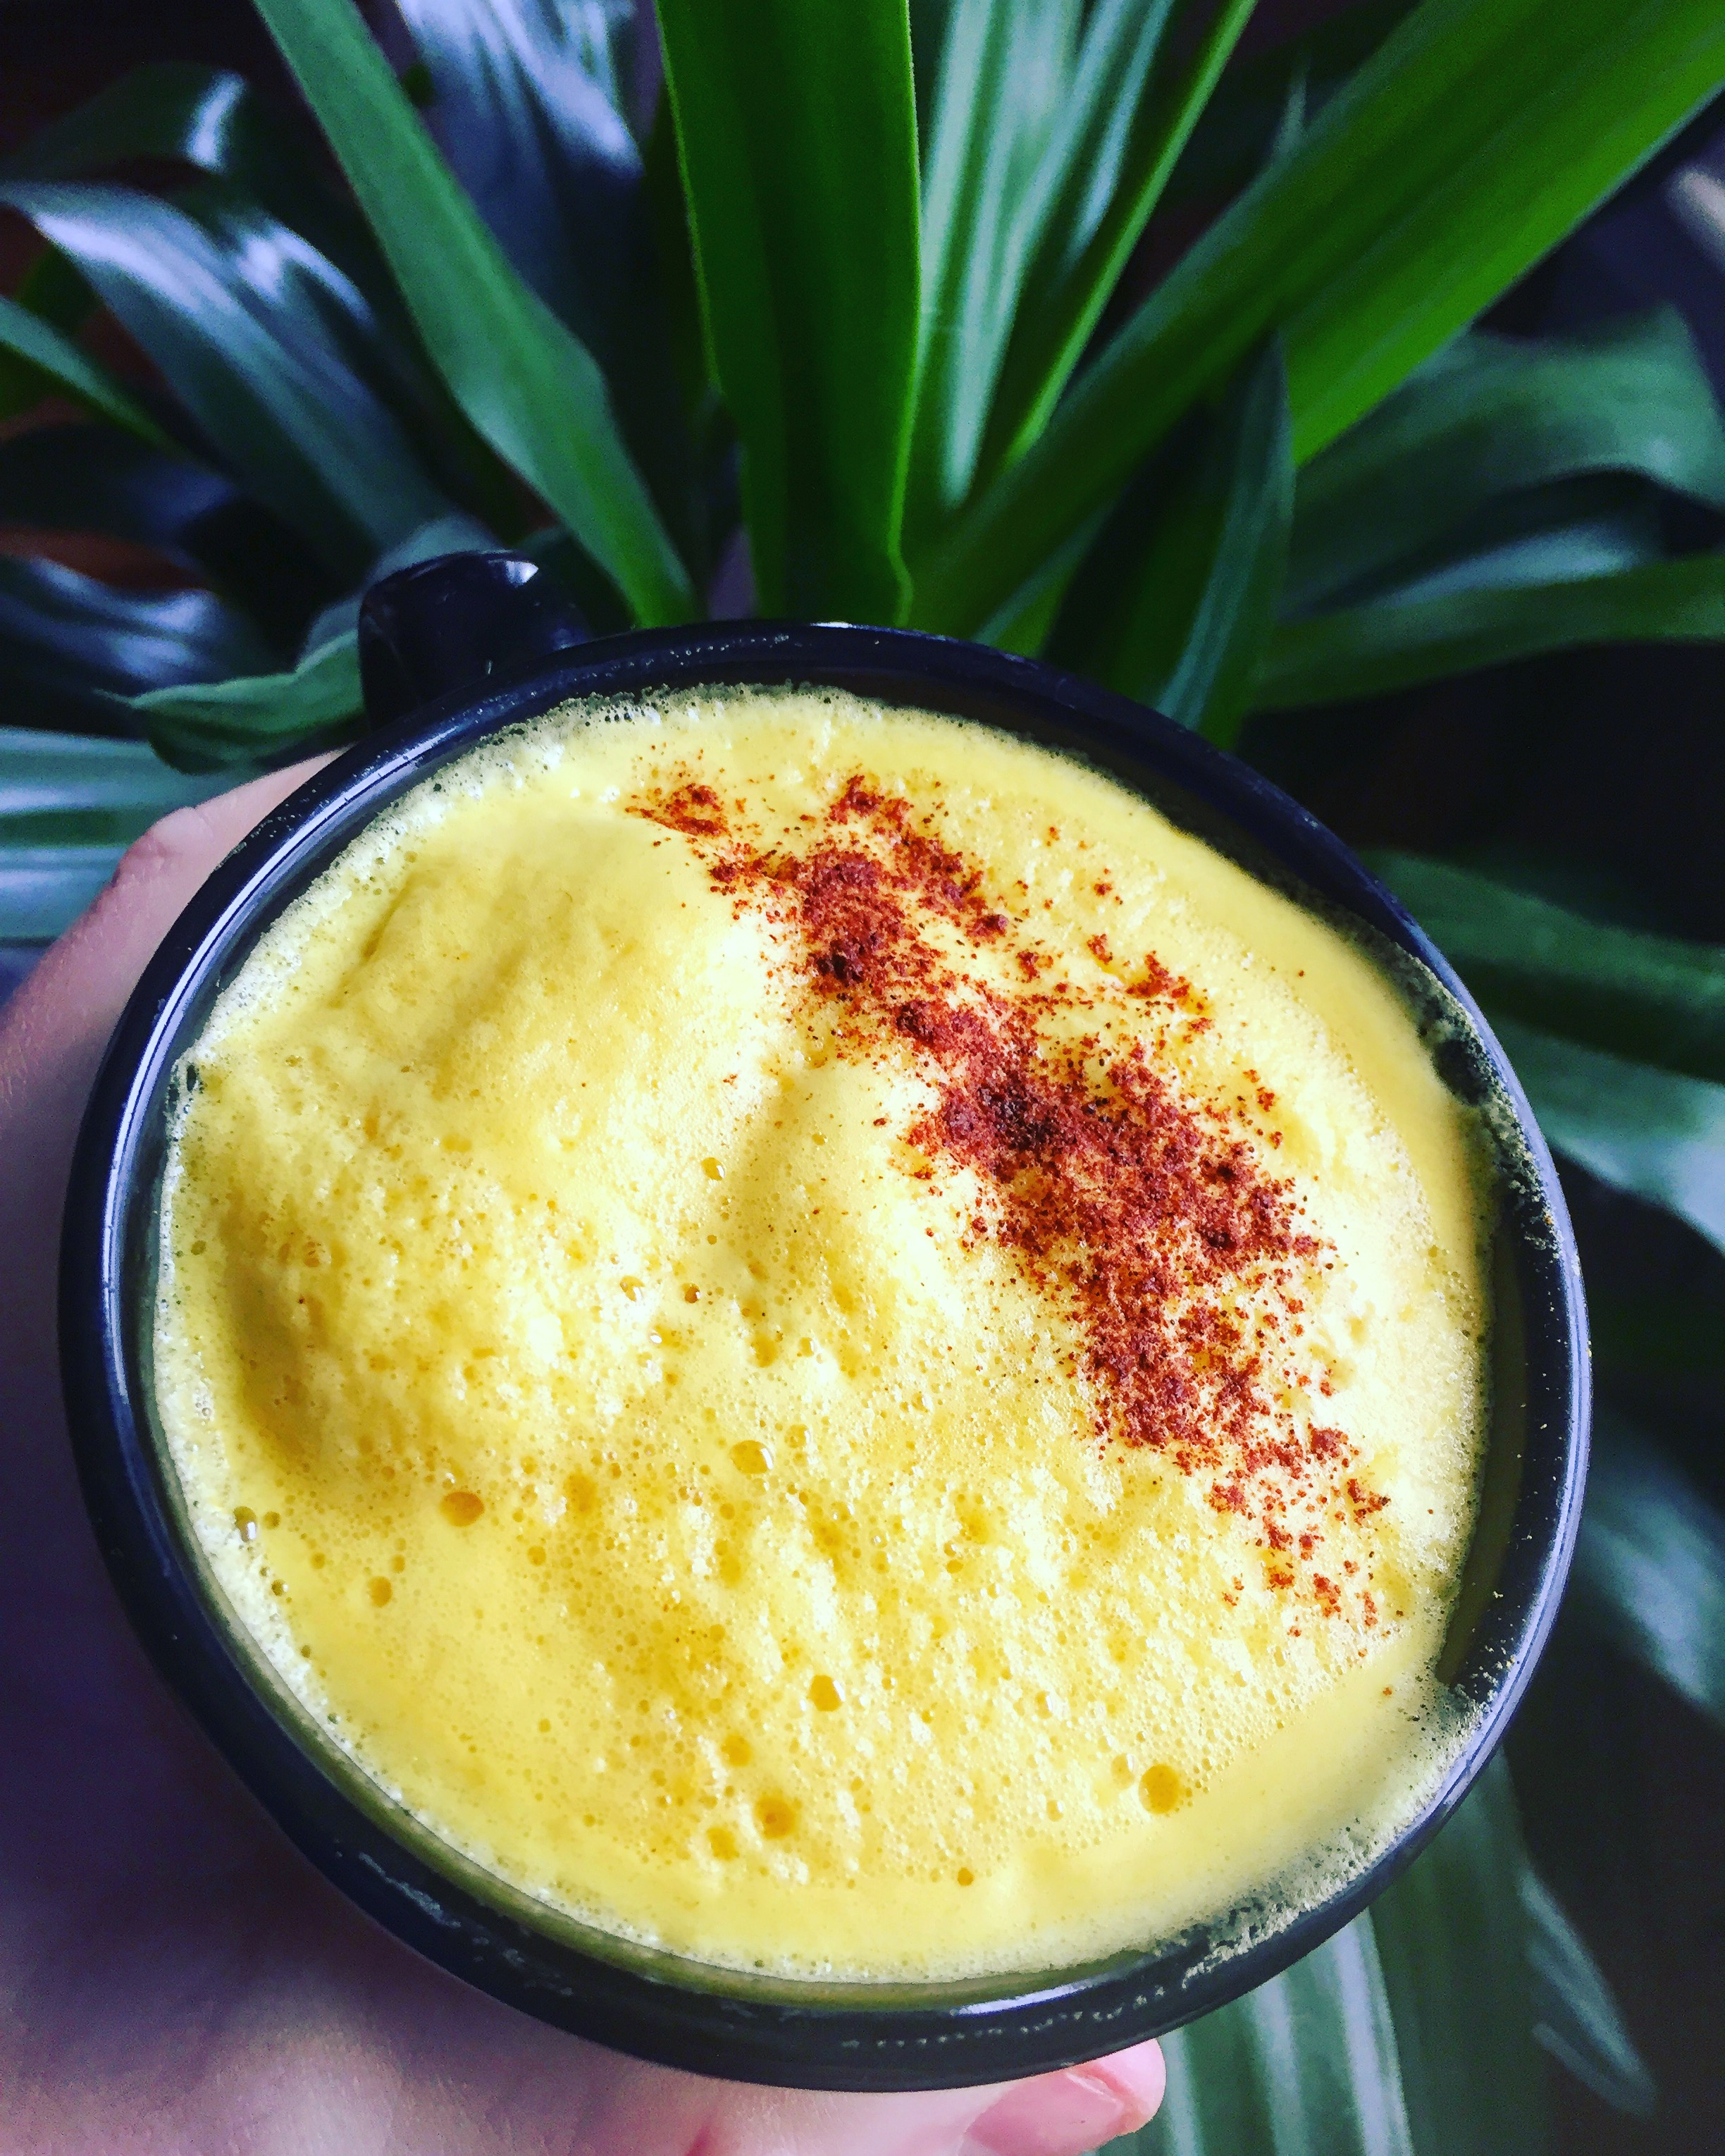 Enjoying superfoods like Golden Milk on a plant based diet.